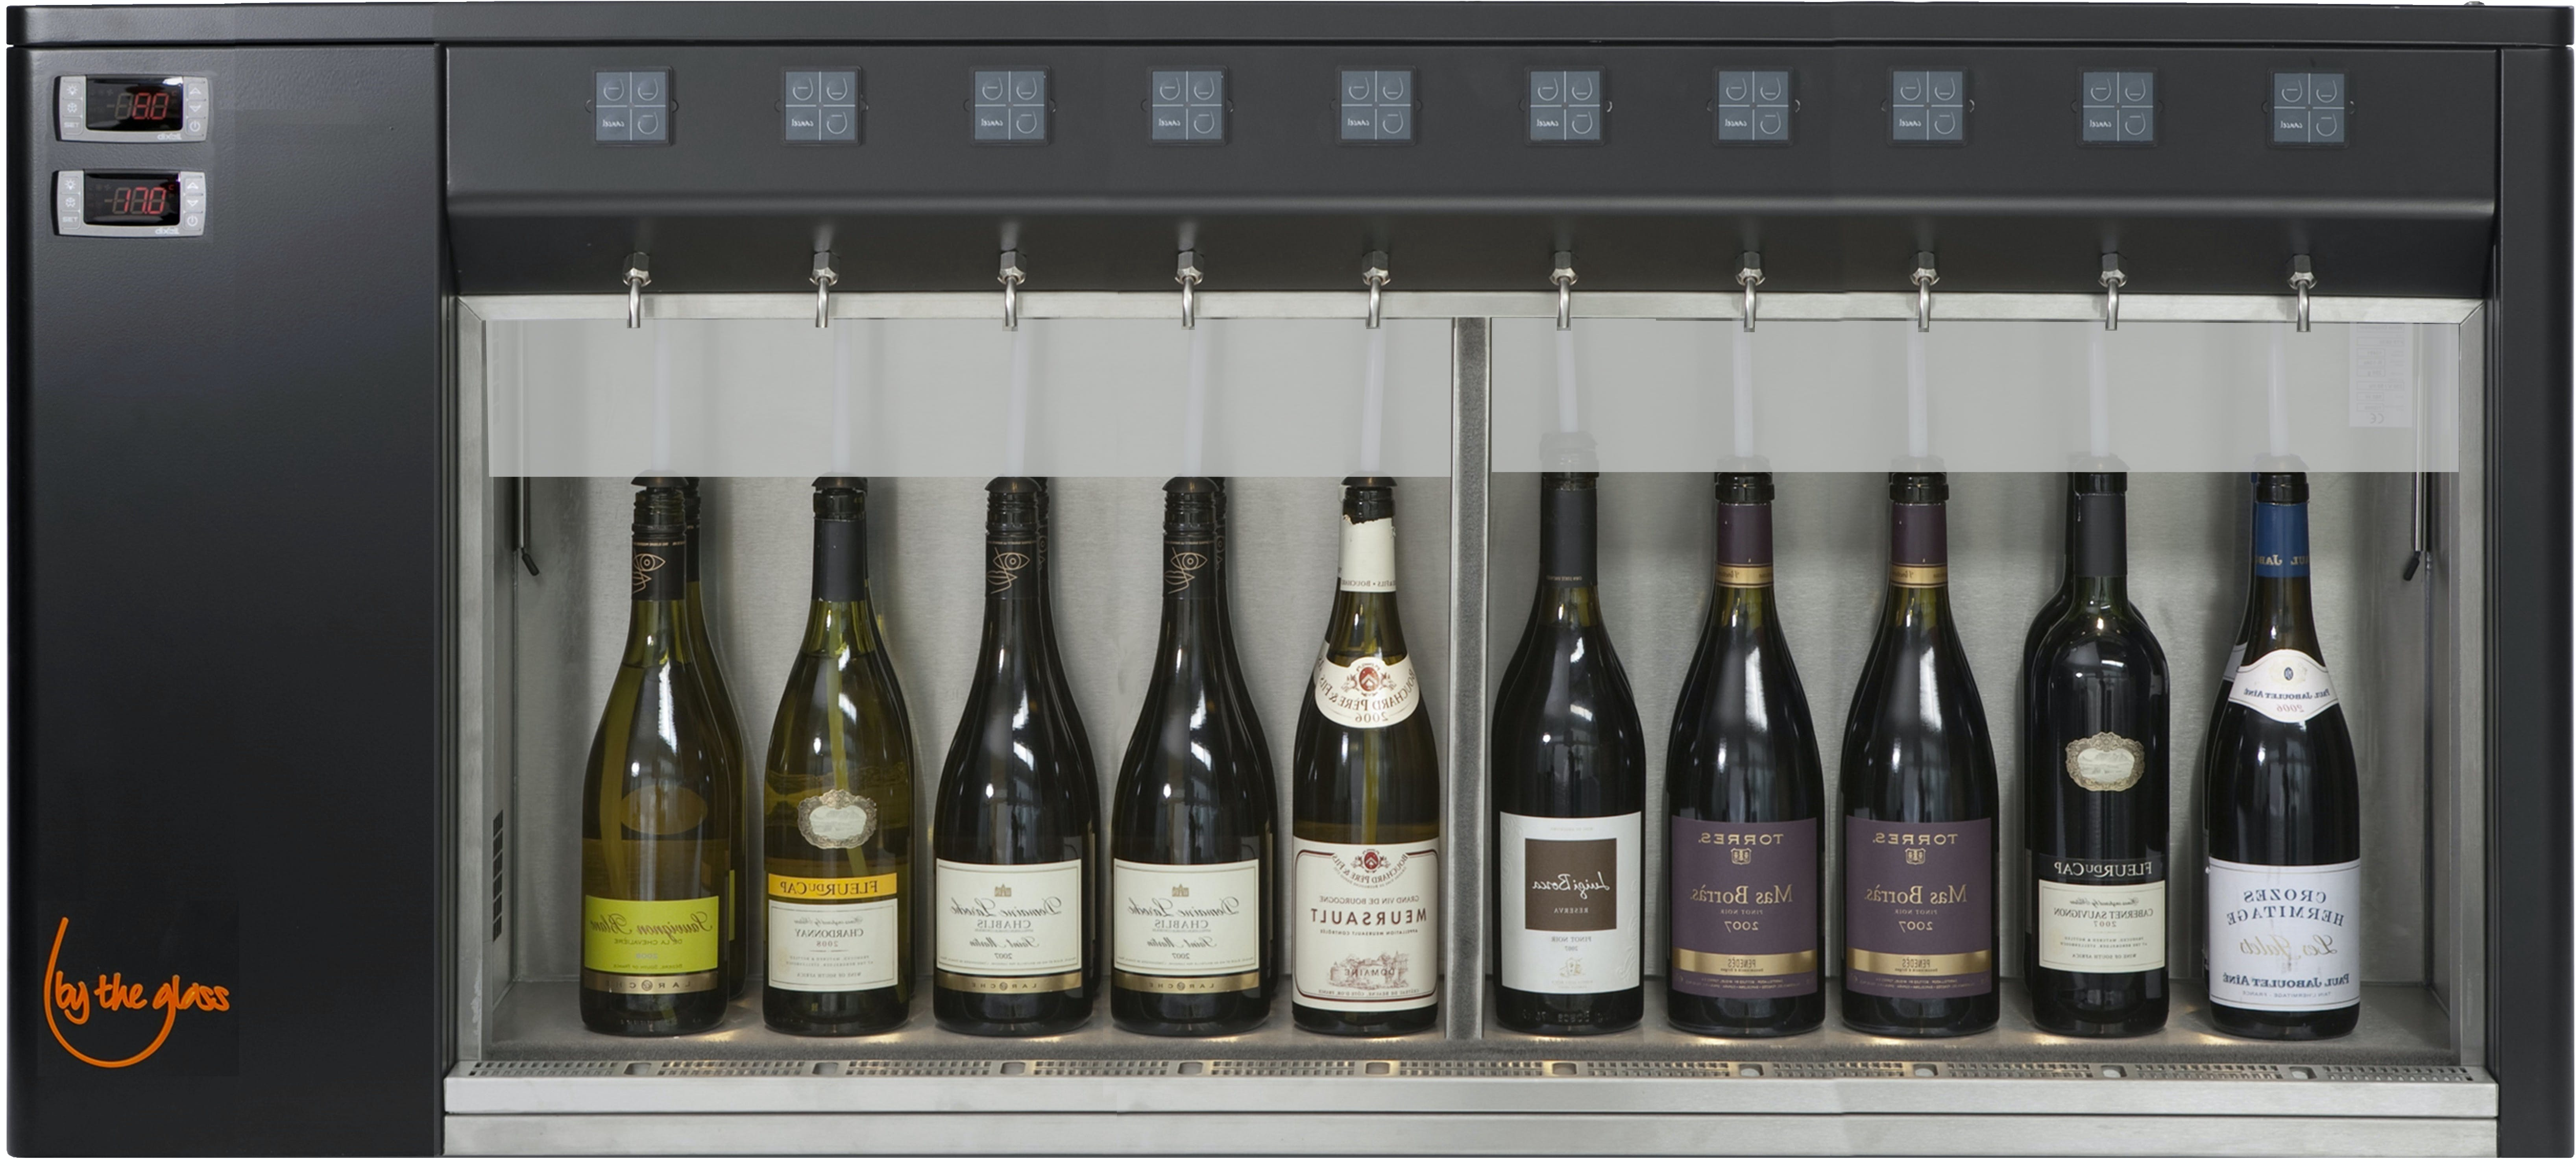 10 Bottle System - sold by By The Glass